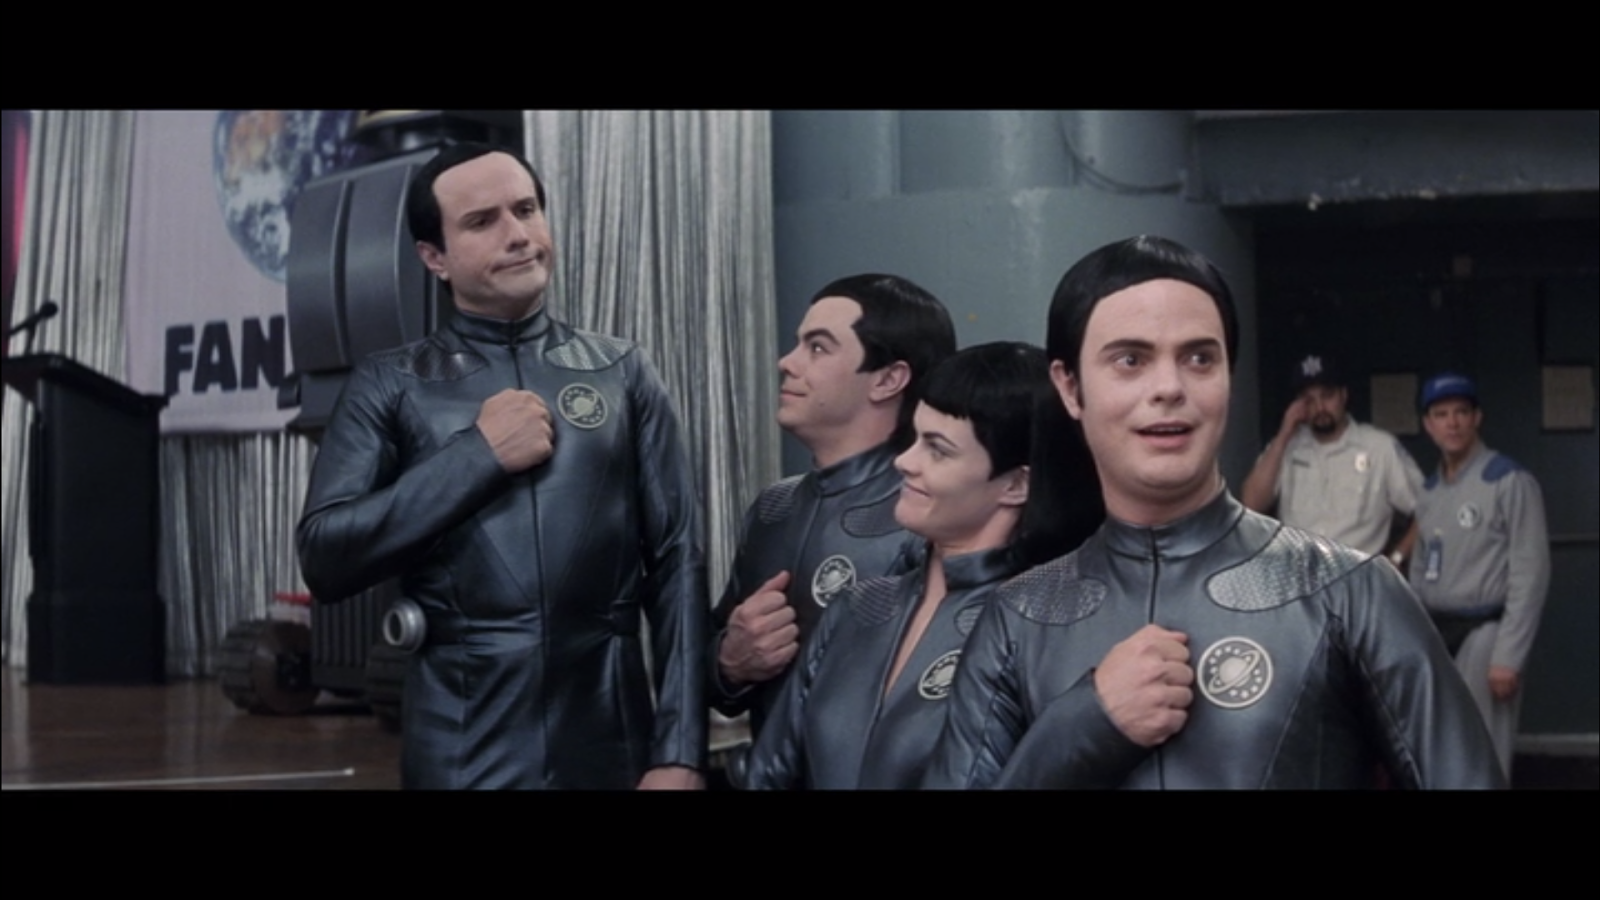 galaxy quest thermians wwwimgkidcom the image kid